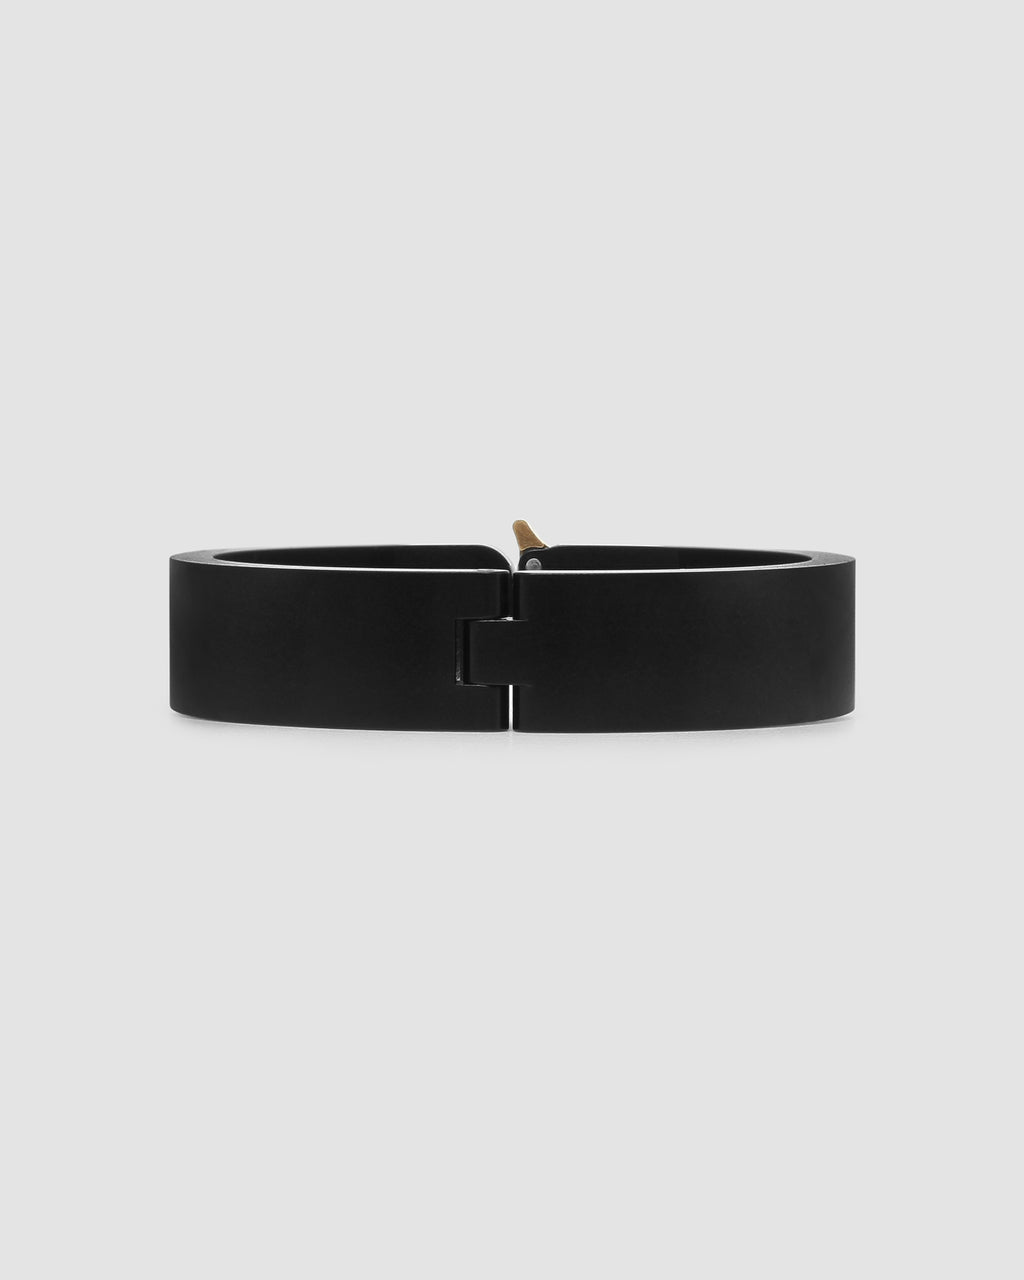 1017 ALYX 9SM | ROLLERCOASTER BRACELET | Jewellery | Accessories, Black, Google Shopping, Man, S19, S20, Woman